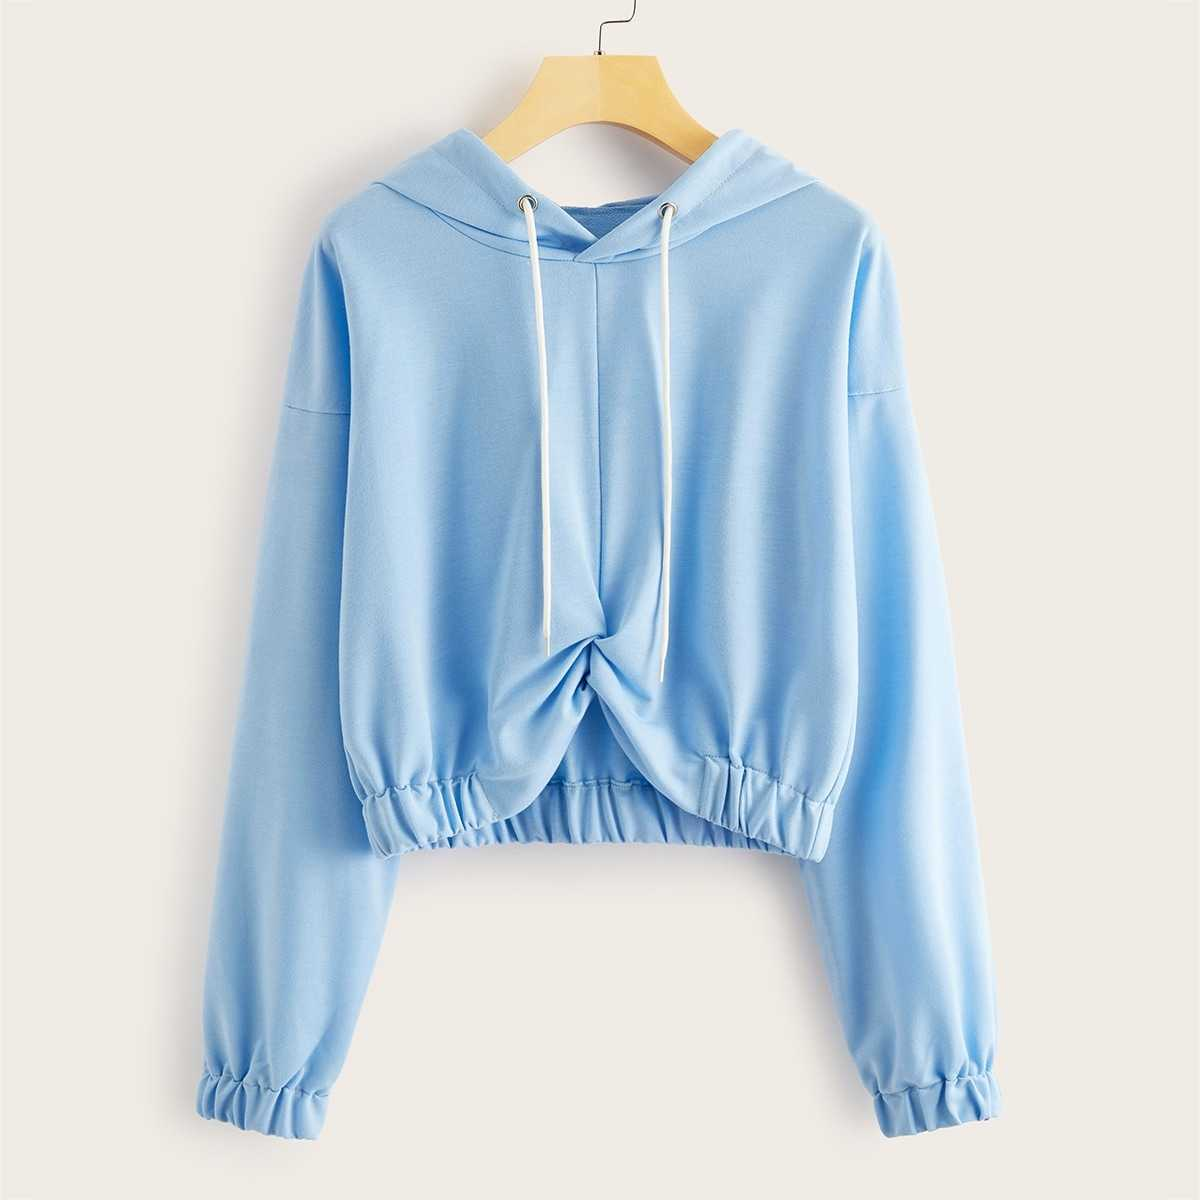 Solid Twist Front Drawstring Hoodie in Blue by ROMWE on GOOFASH